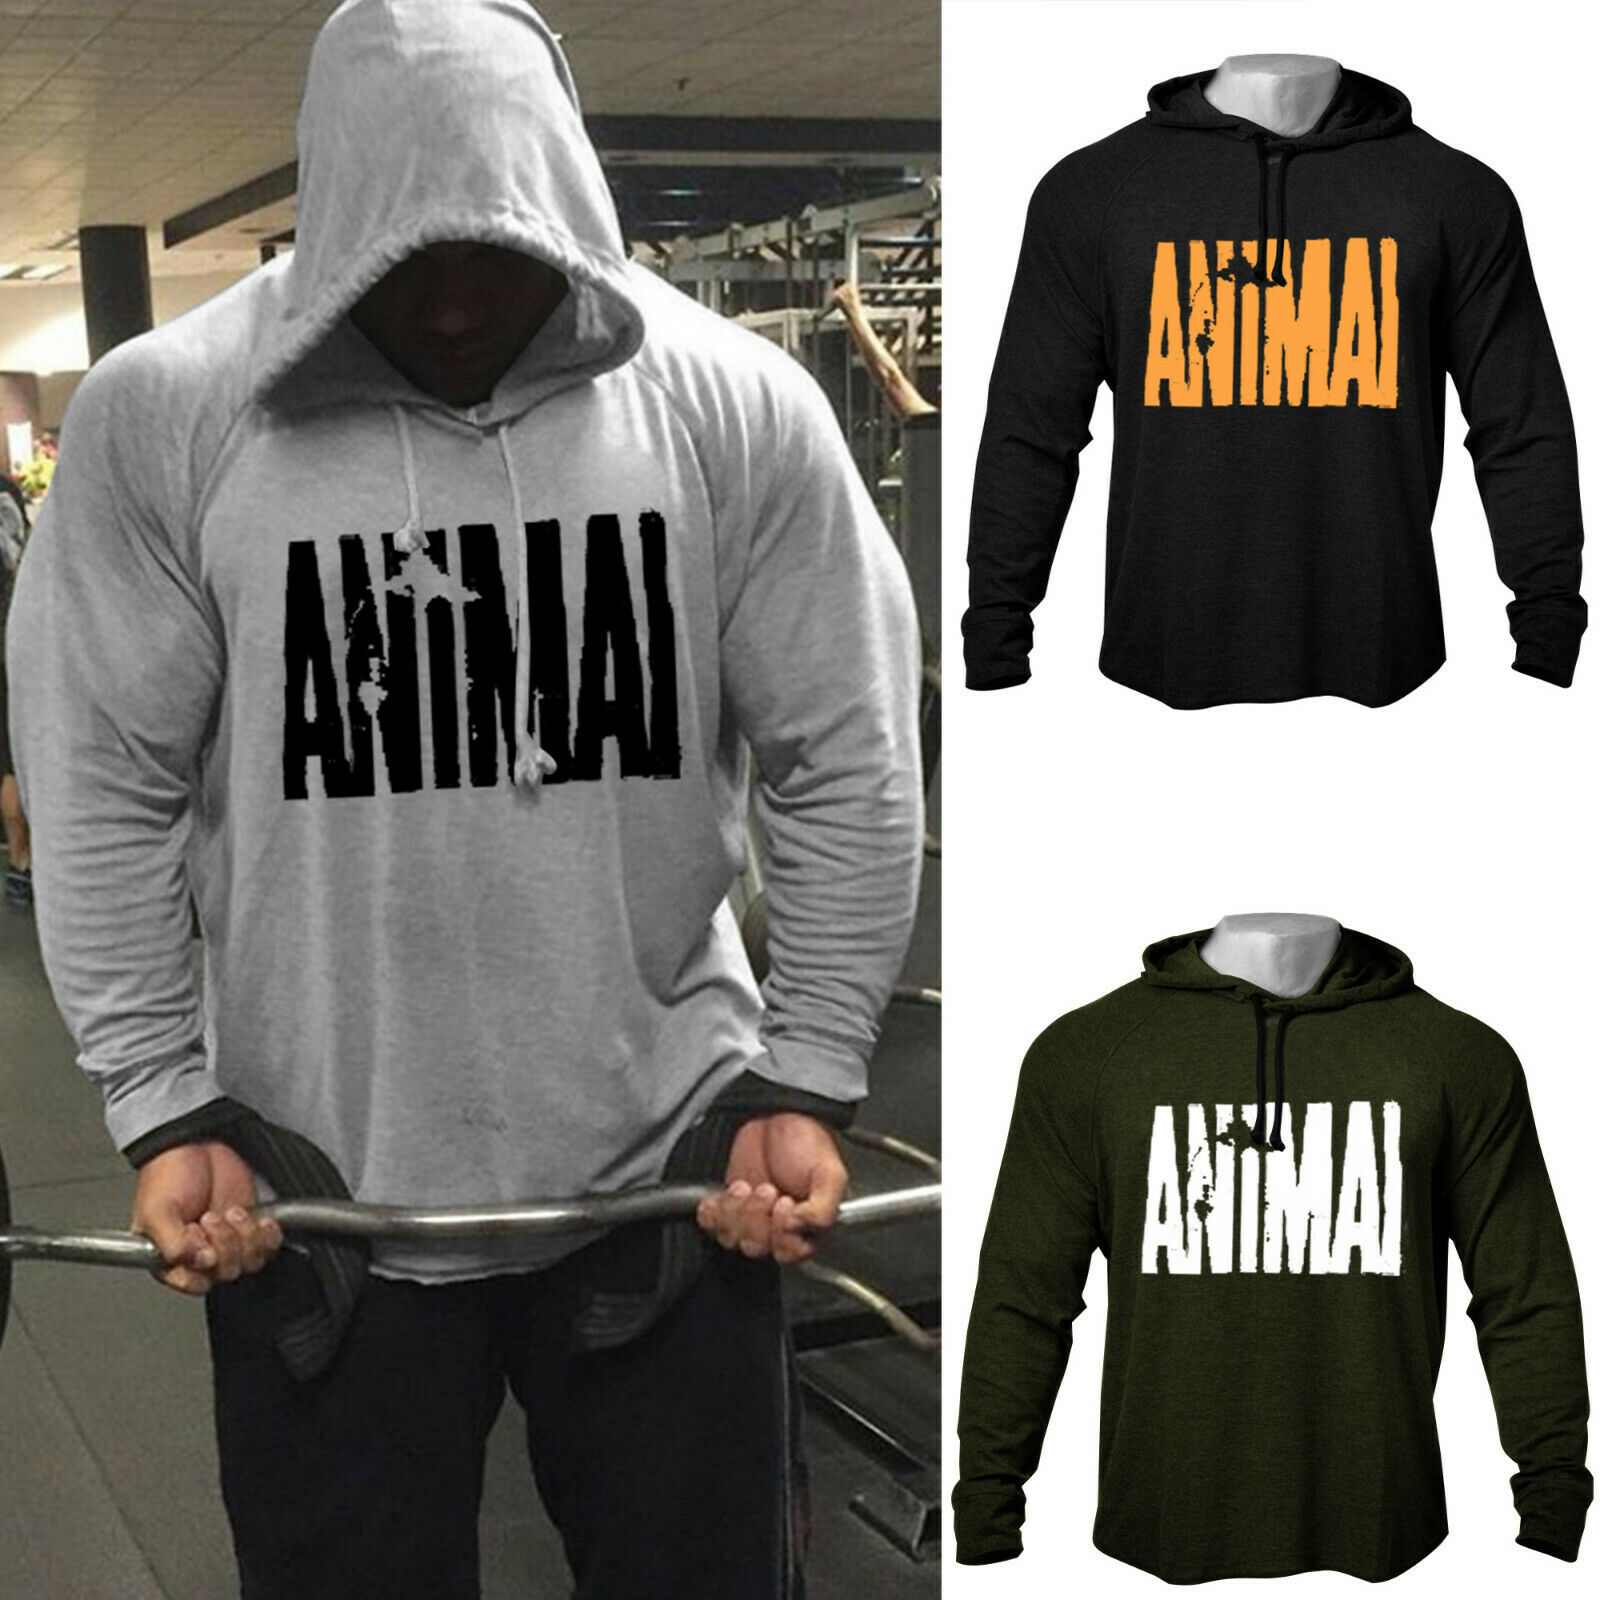 "Men's GYM Workout Print ""ANIMAL"" Bodybuilding Cotton Raglan Hoodies Sweatshirts Raw-Cut&Hem-Cut Hoodies Tracksuit Top"